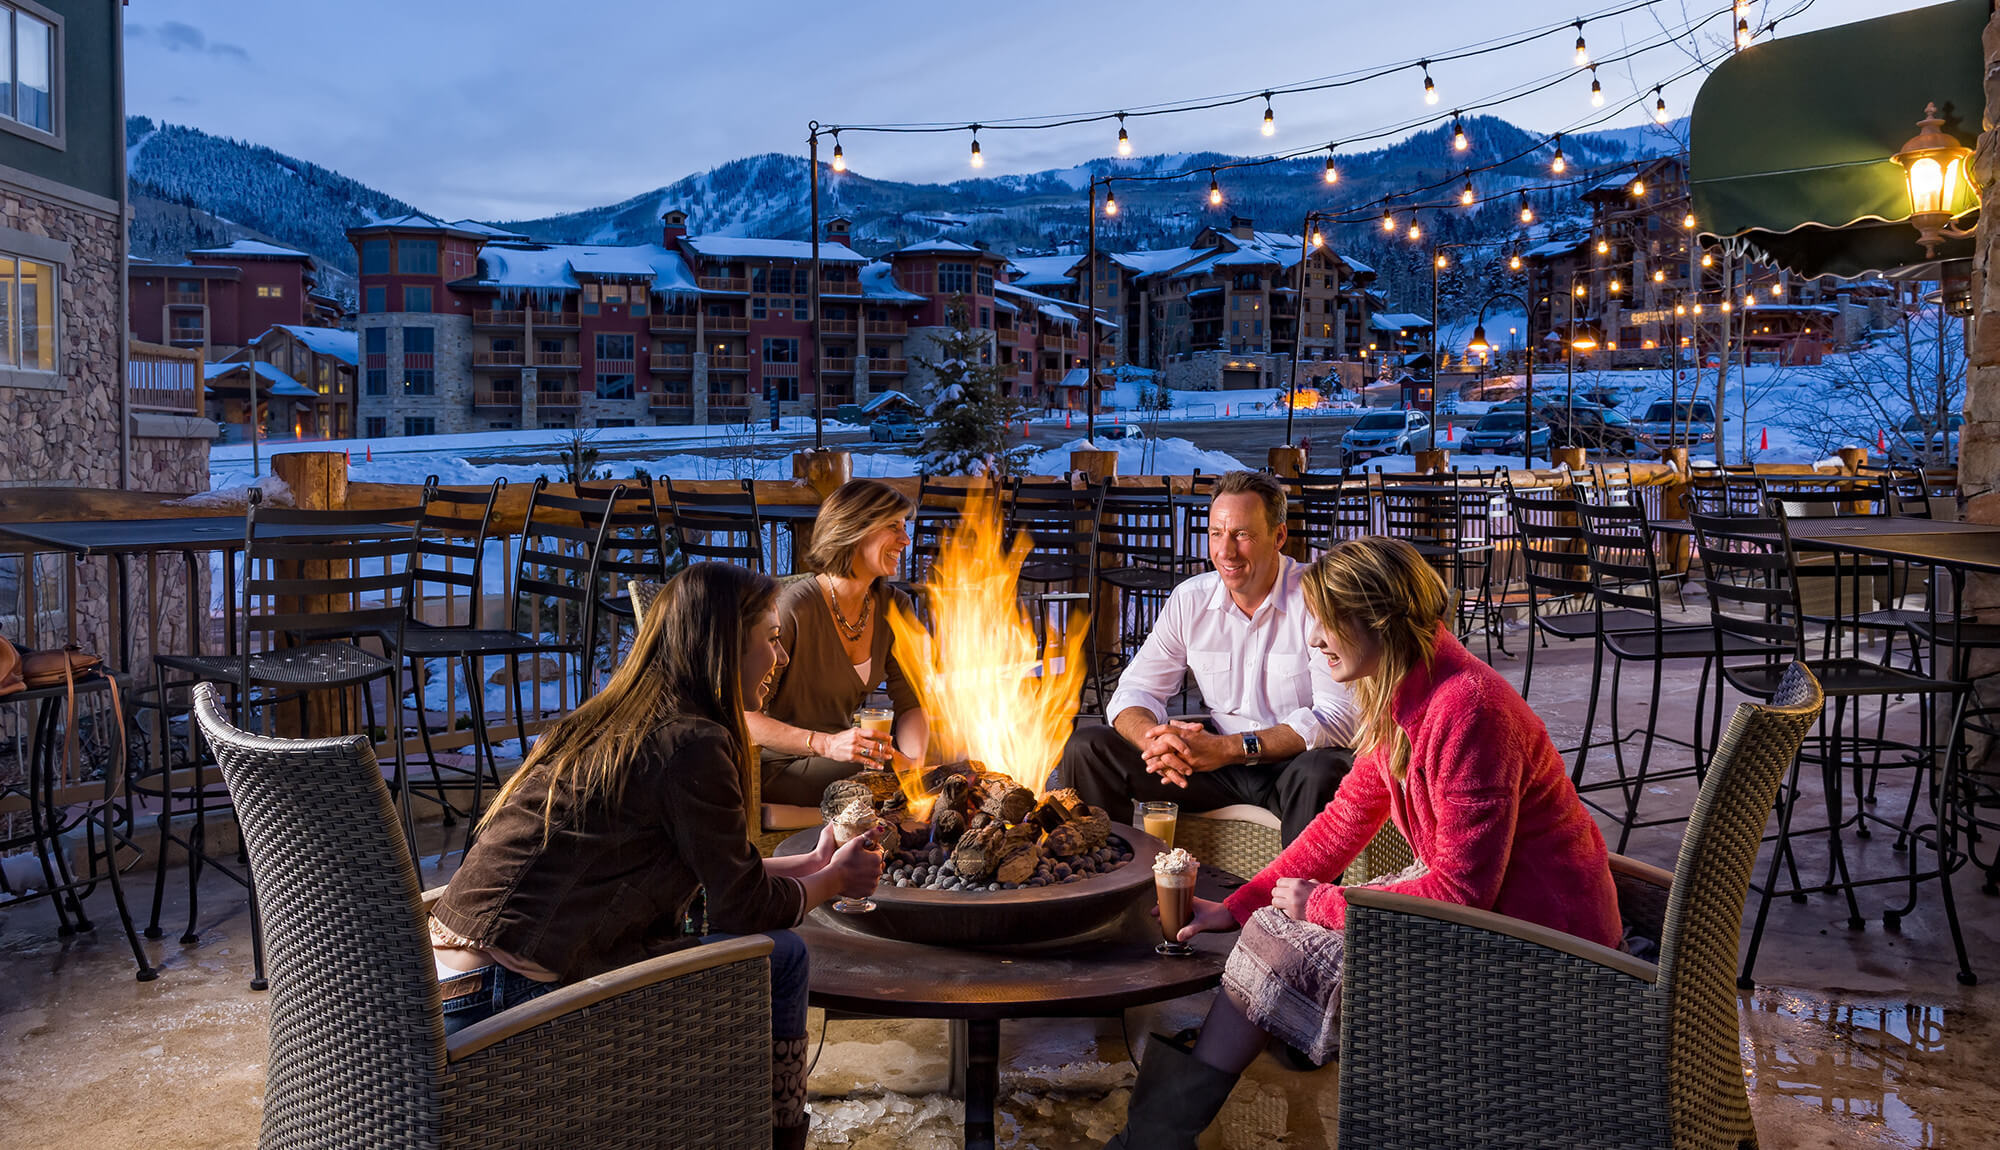 Utah Staycation Hotel Deals For 2018   Vacation or Staycation   Westgate Resorts